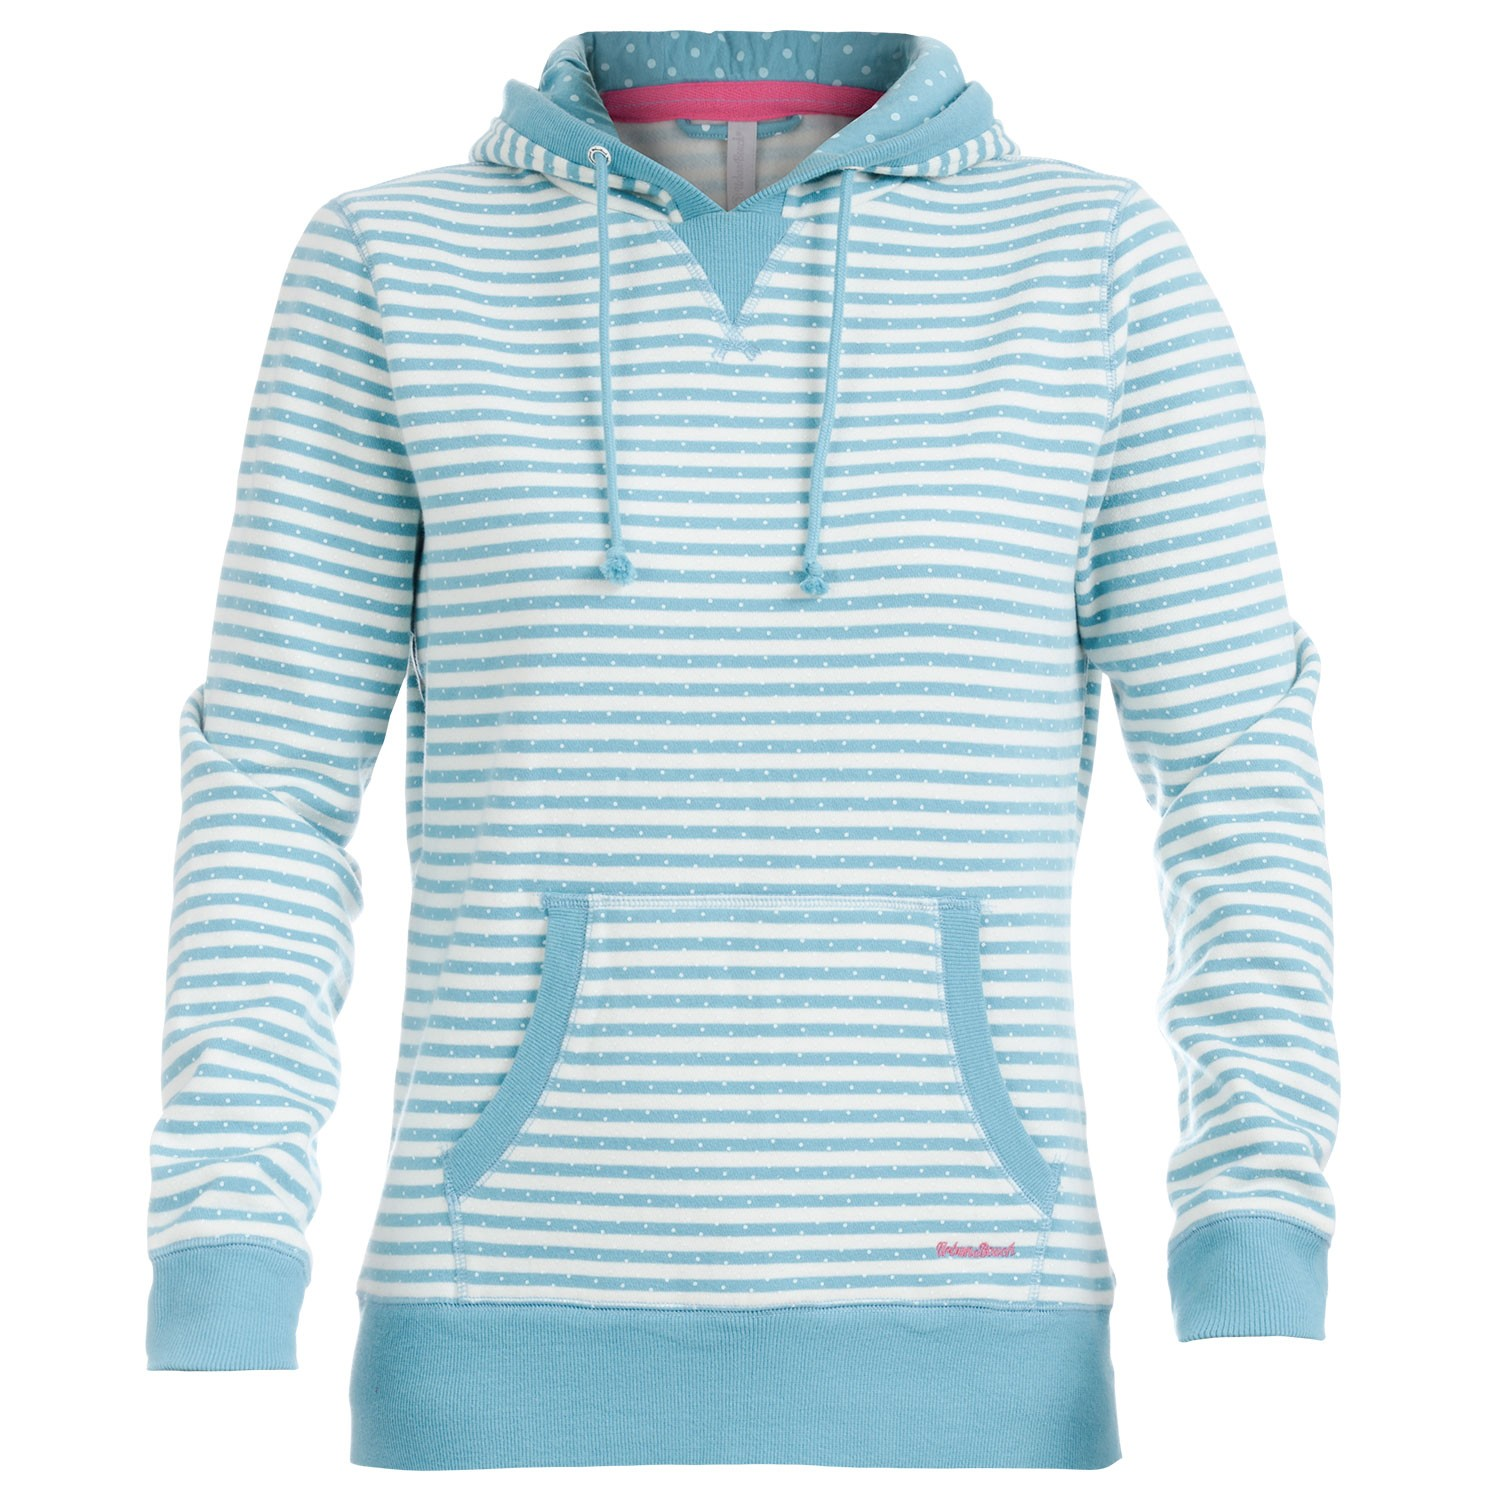 e0e6c87961 Womens Surf Hoodies & Sweatshirts | Free UK Delivery* | Urban Beach Surf